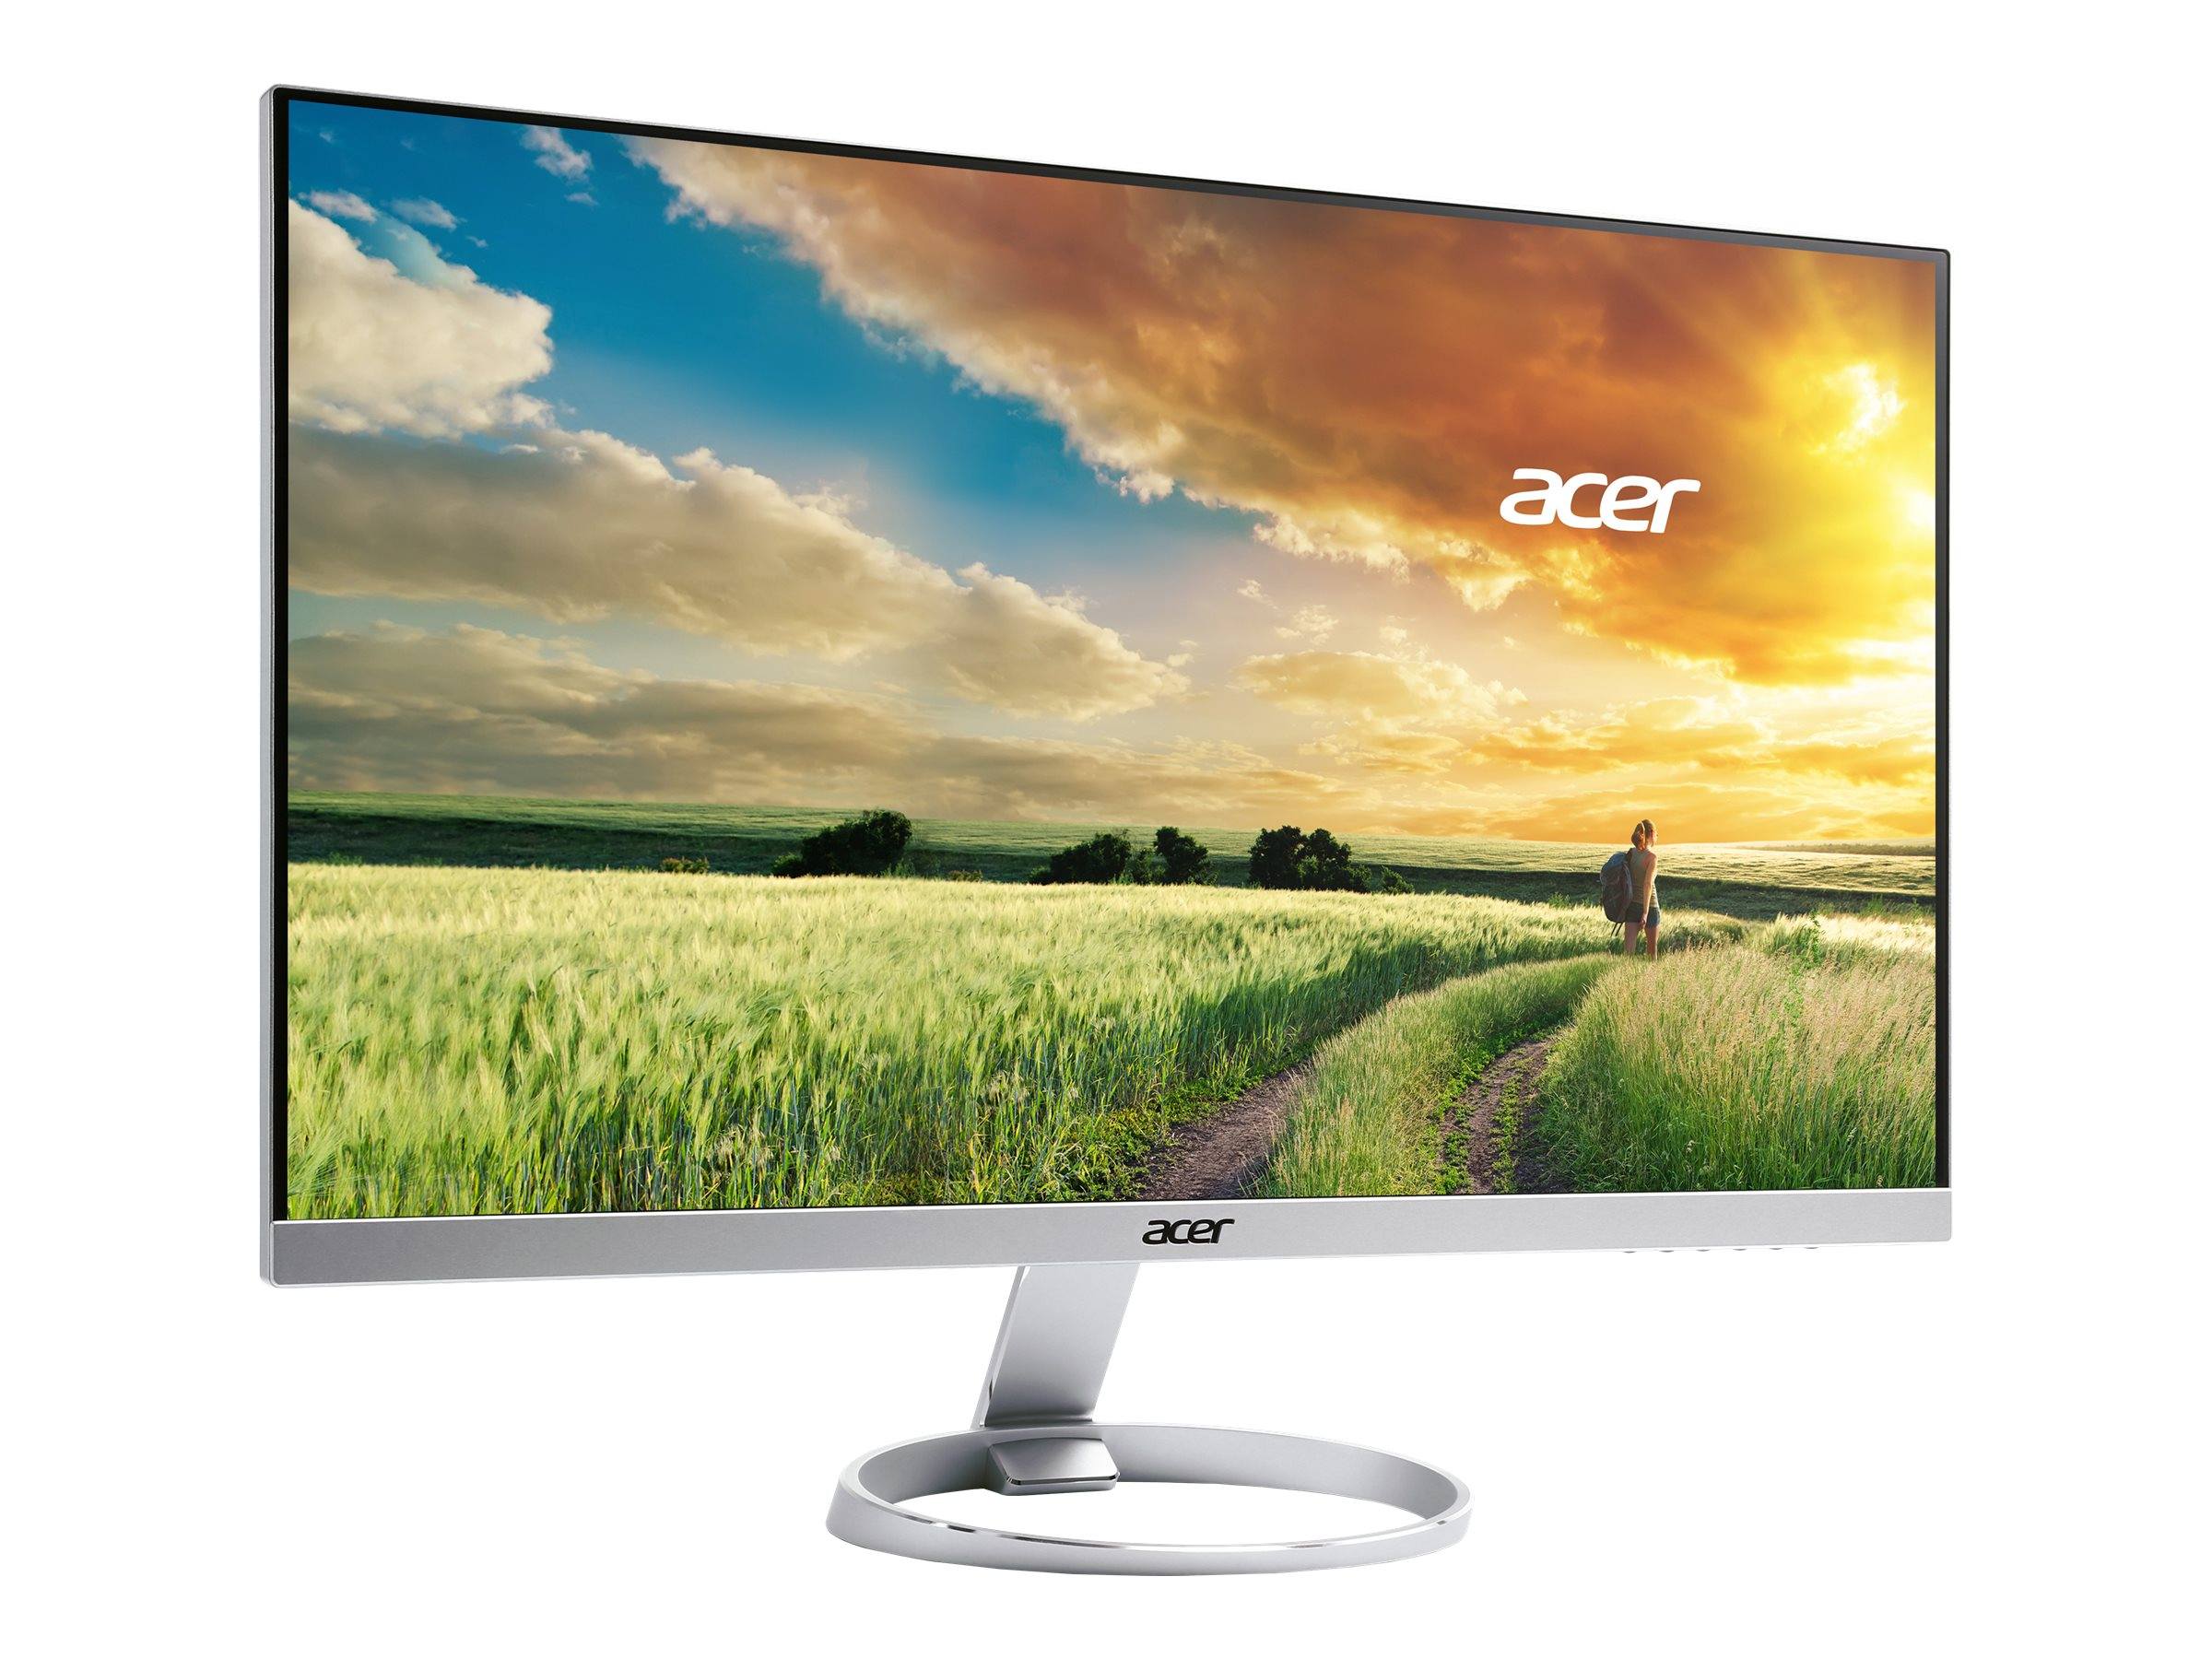 Acer 25 H257HU SMIDPX WQHD LED-LCD IPS Monitor, Silver Black, UM.KH7AA.001